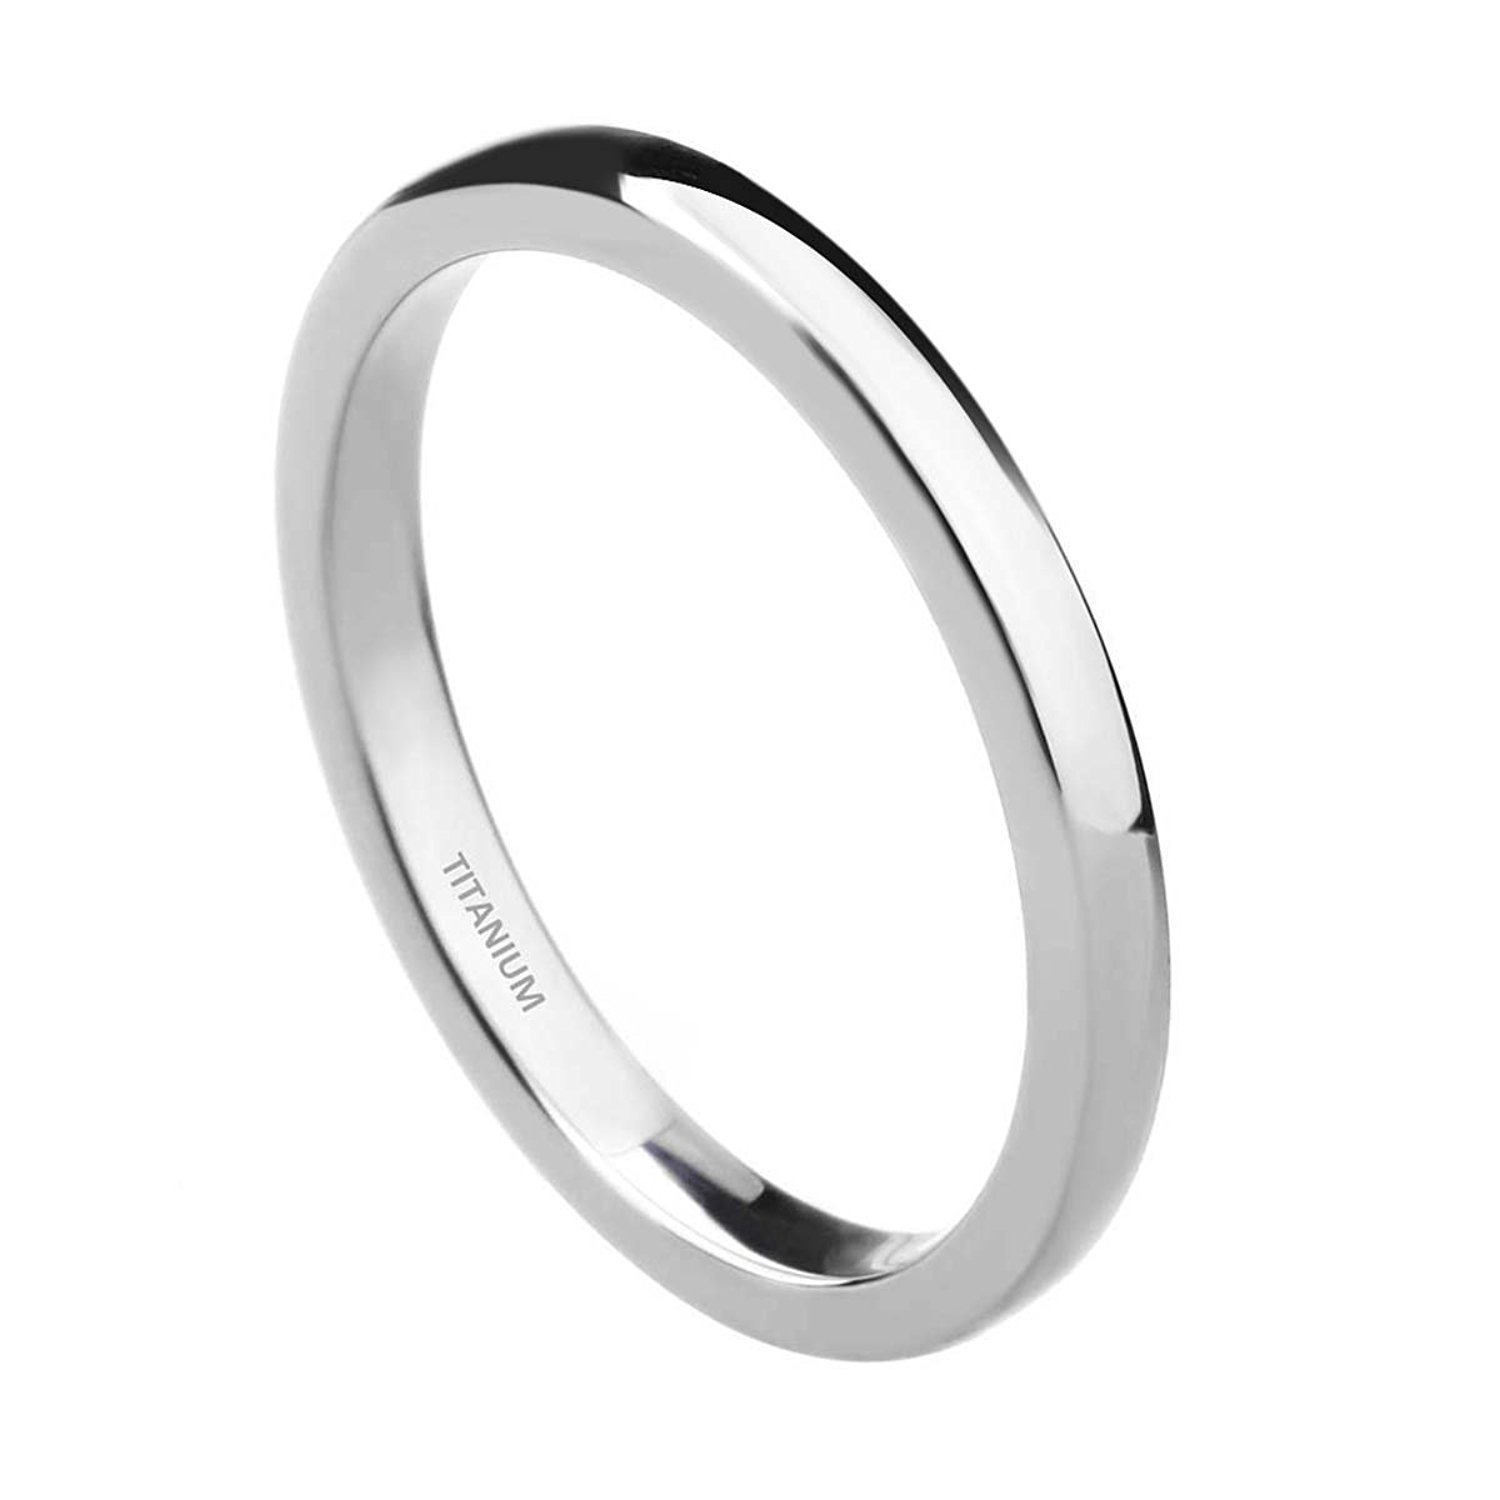 2mm/4mm/6mm/8mm Titanium Plain Dome High Polished Wedding Band Ring Comfort Fit TIGRADE CATR2468080S